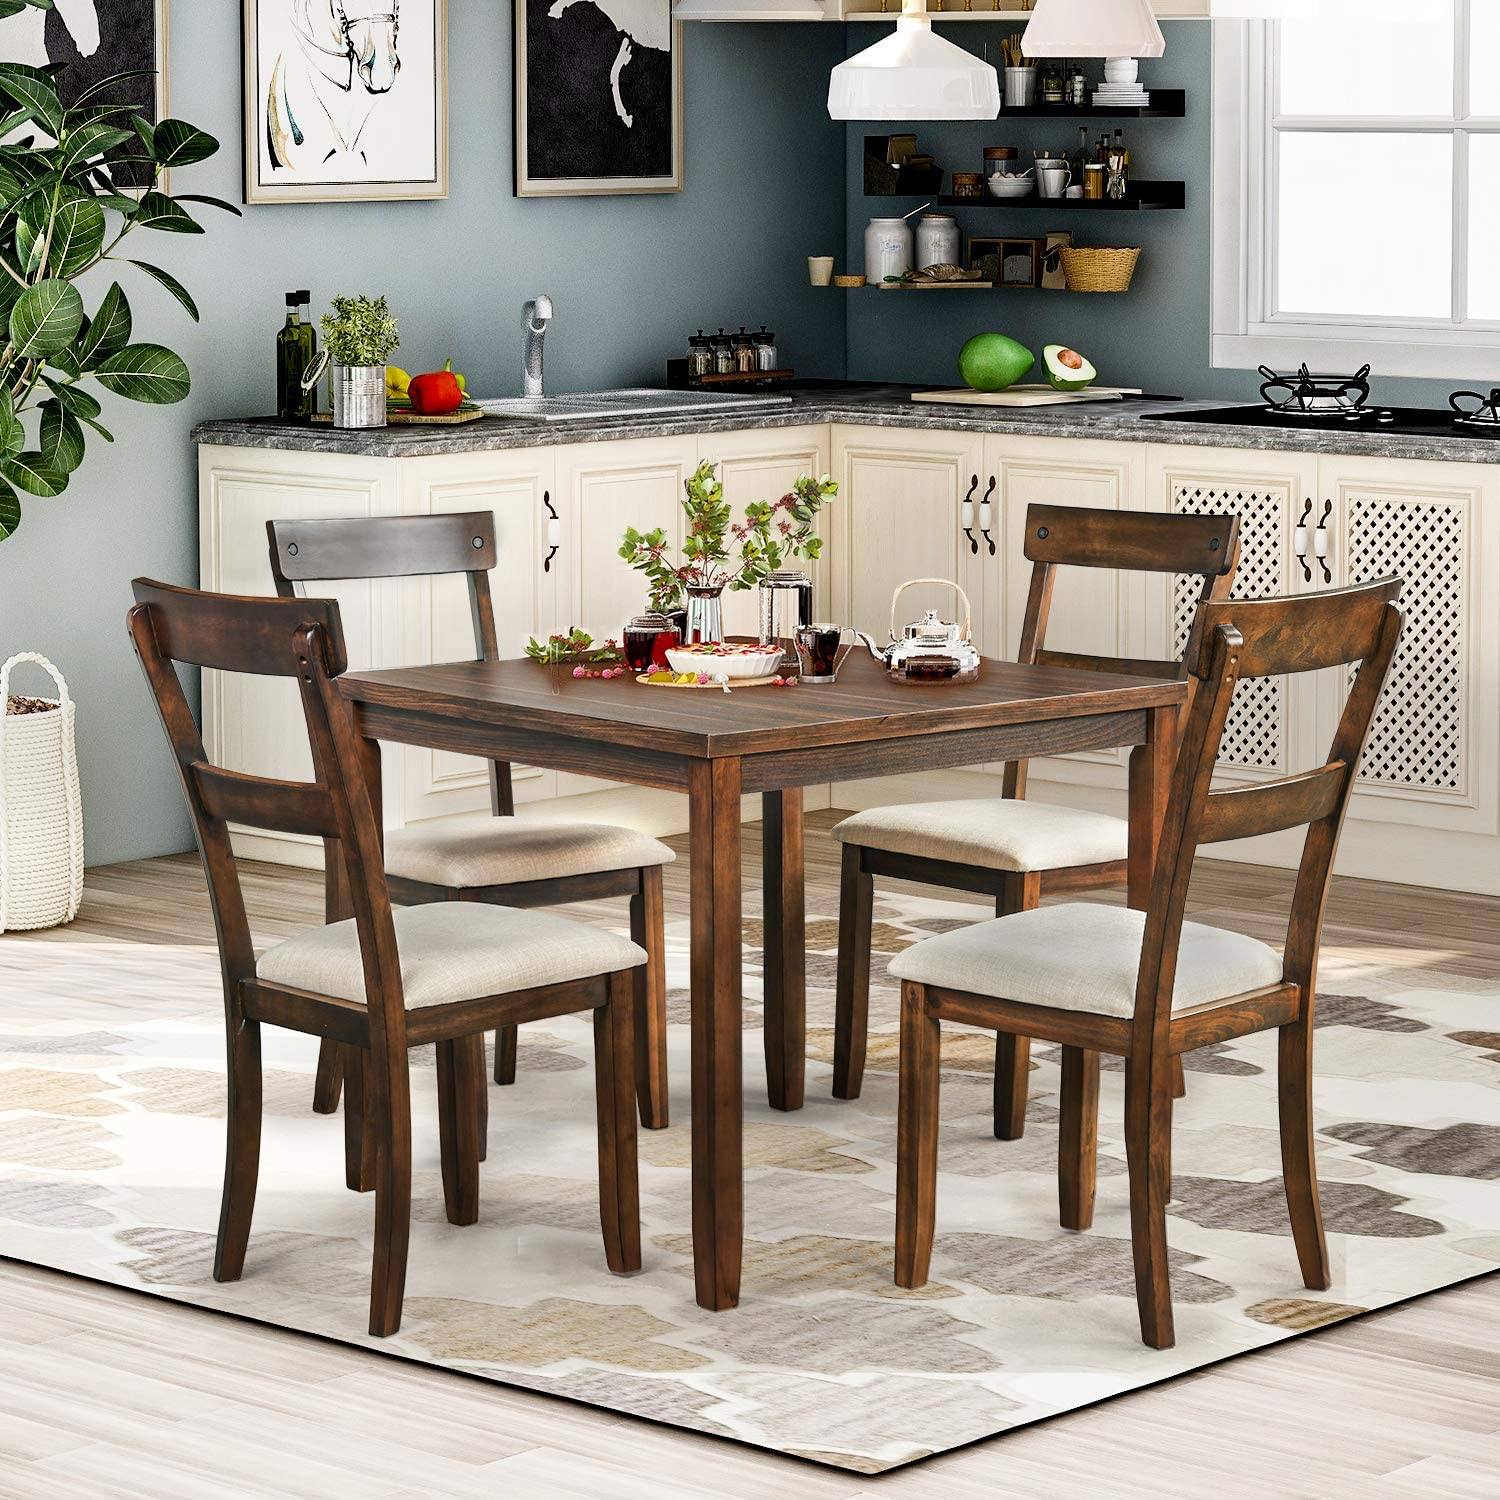 Amazon Com P Purlove 5 Piece Dining Table Set Rustic Wood Kitchen Table And 4 Chairs 5 Piece Wooden Dining Set For Kitchen Dining Room American Walnut Table Chair Sets